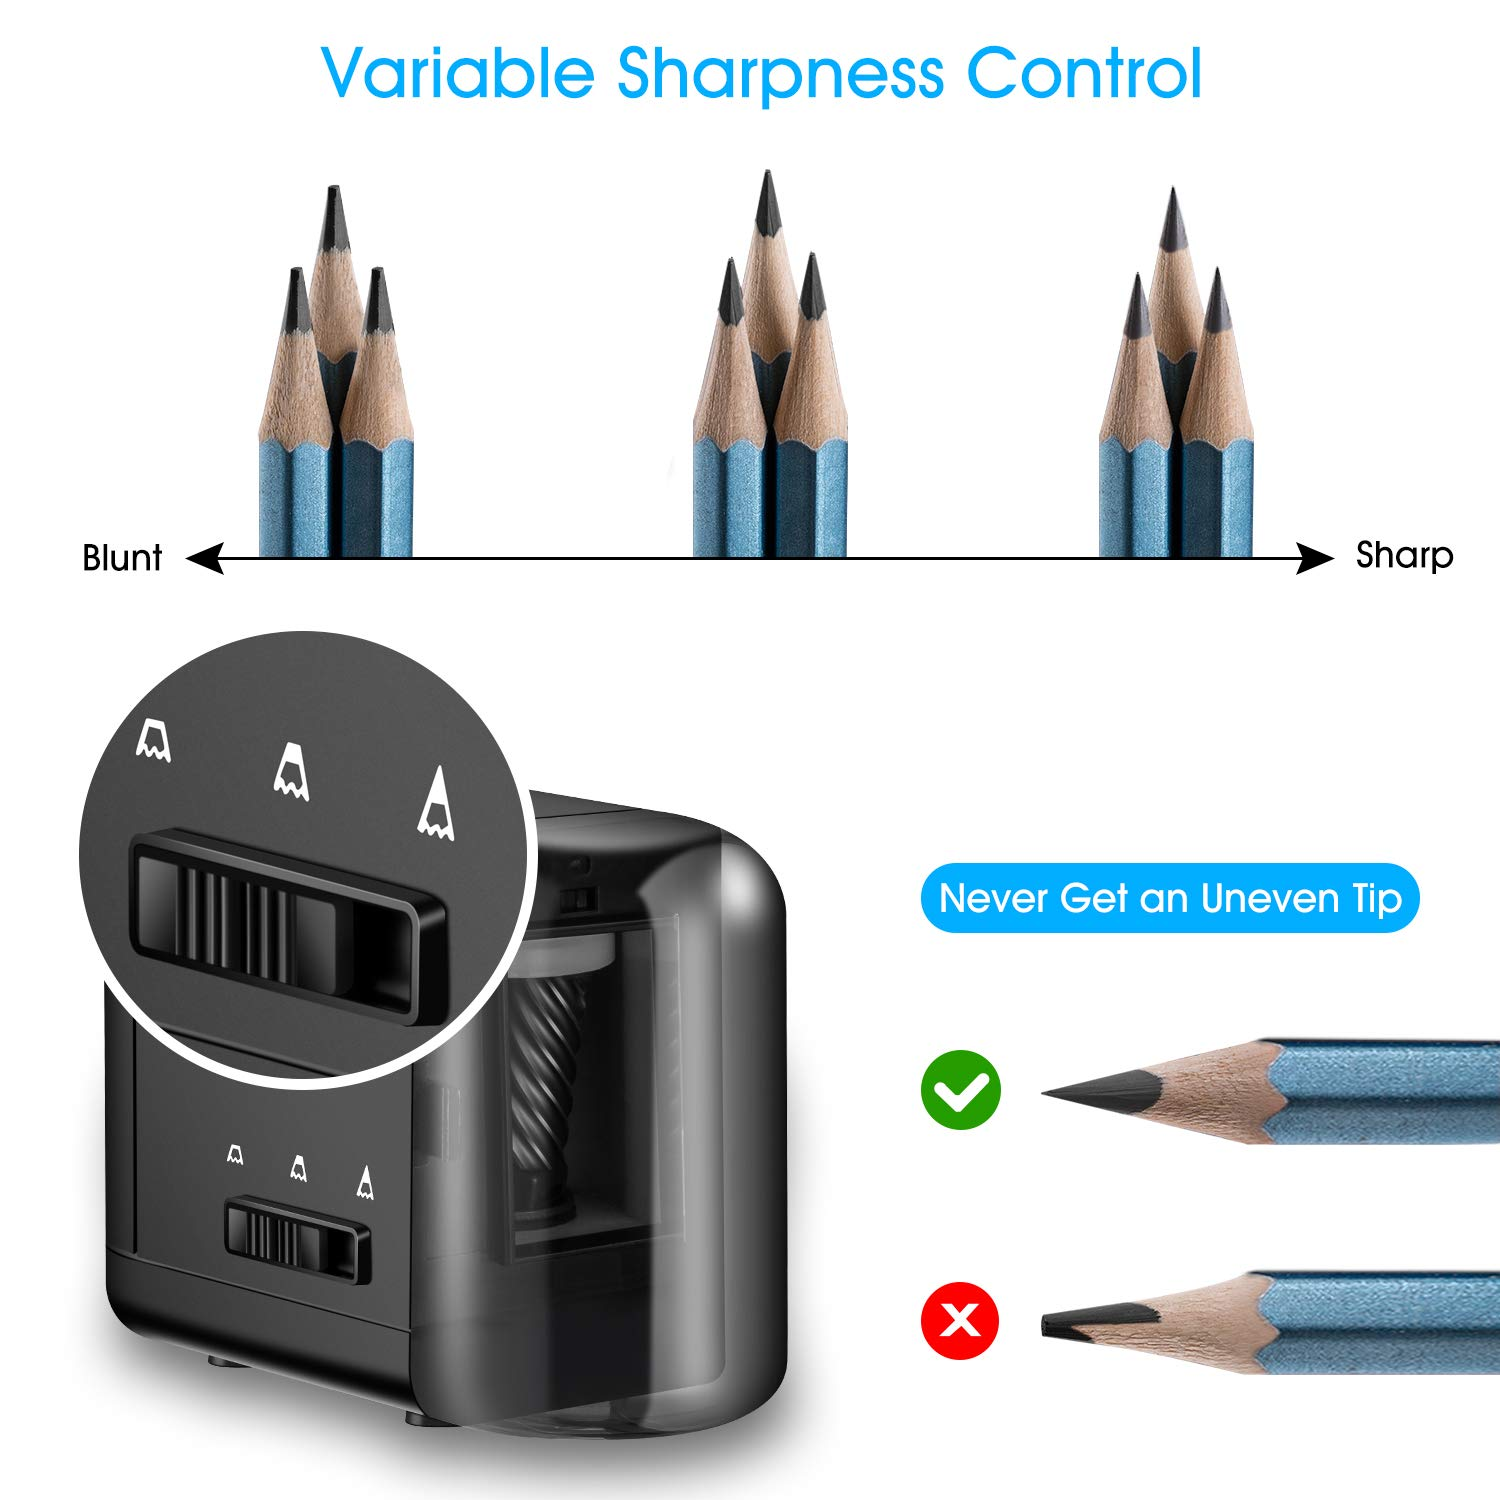 Tobeape Electric Pencil Sharpener, Heavy-duty Helical Blade, Variable Sharpness Control for 6.5-8mm Diameter Pencils, USB or AC or 4 AA Batteries Operated in Classroom Office Home